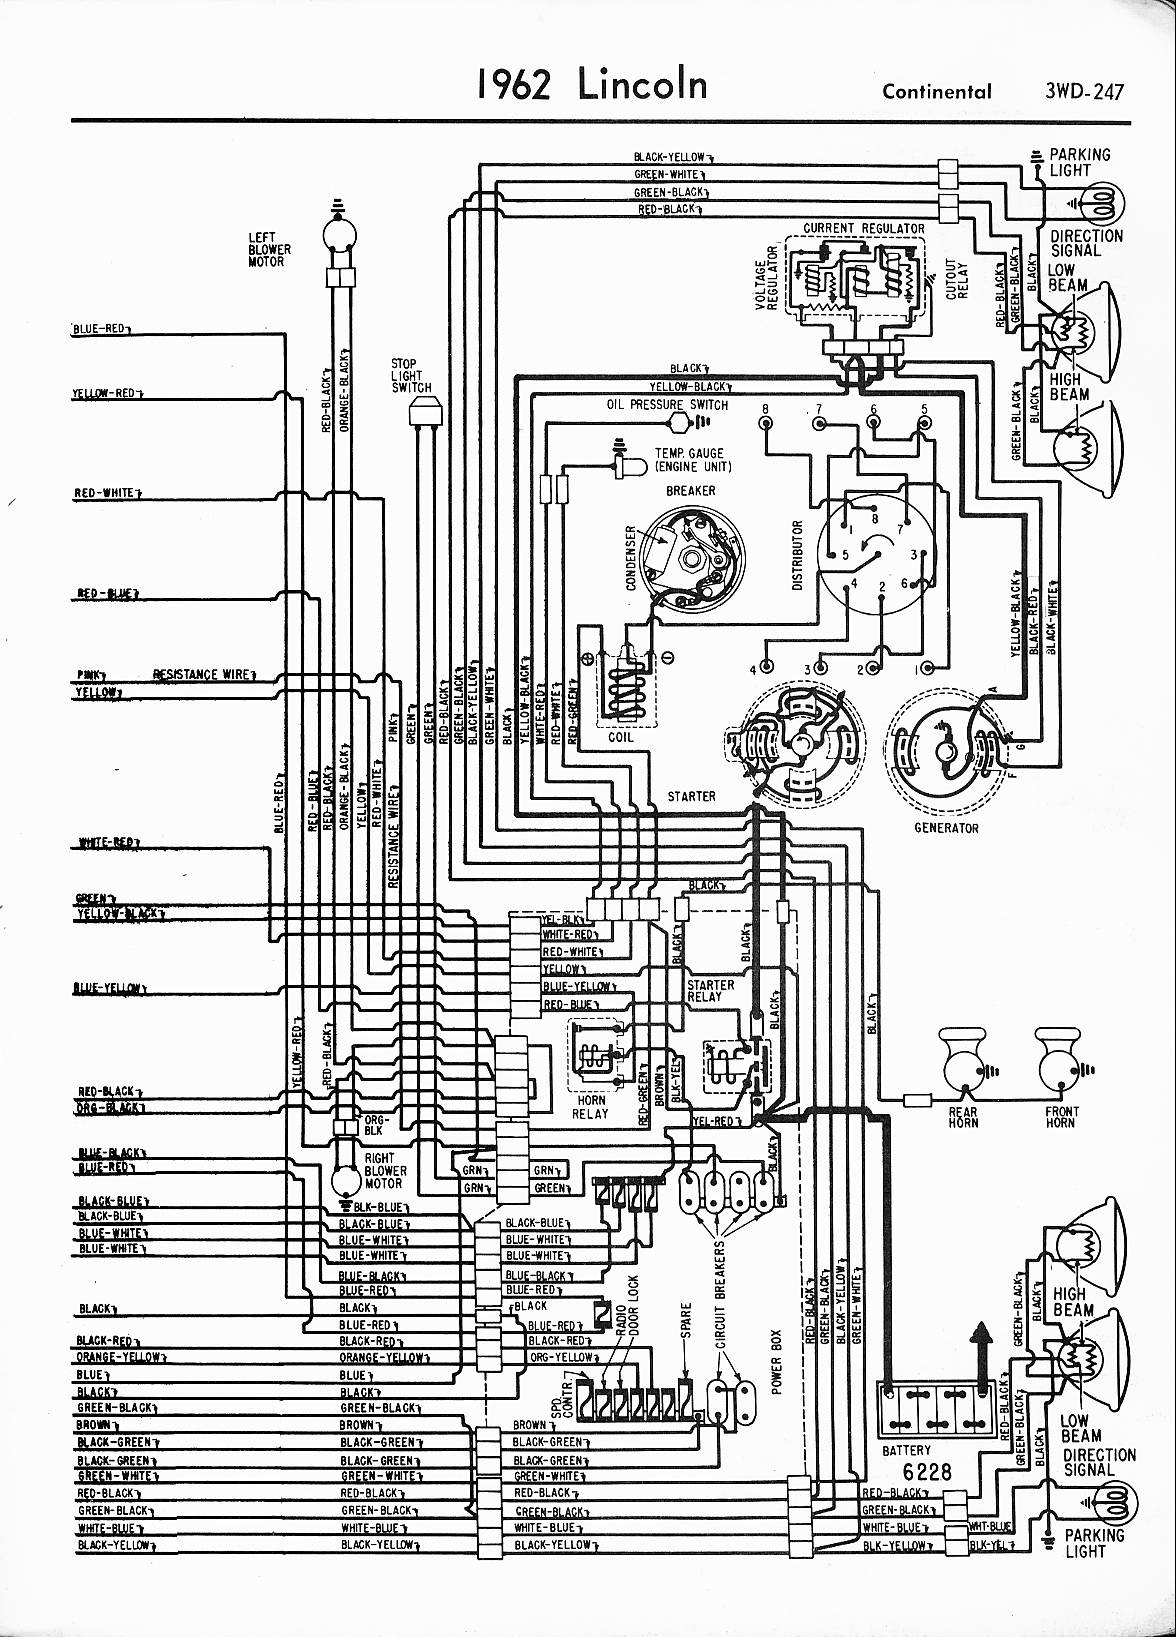 Lincoln Wiring Diagrams: 1957 - 1965 on impala accessories, 2002 chevrolet trailblazer fuse diagram, impala engine, impala steering diagram, impala frame, impala fuse diagram, impala wheels, impala transmission diagram, impala suspension, impala seats, impala parts, impala ecu diagram, impala fuel system diagram,